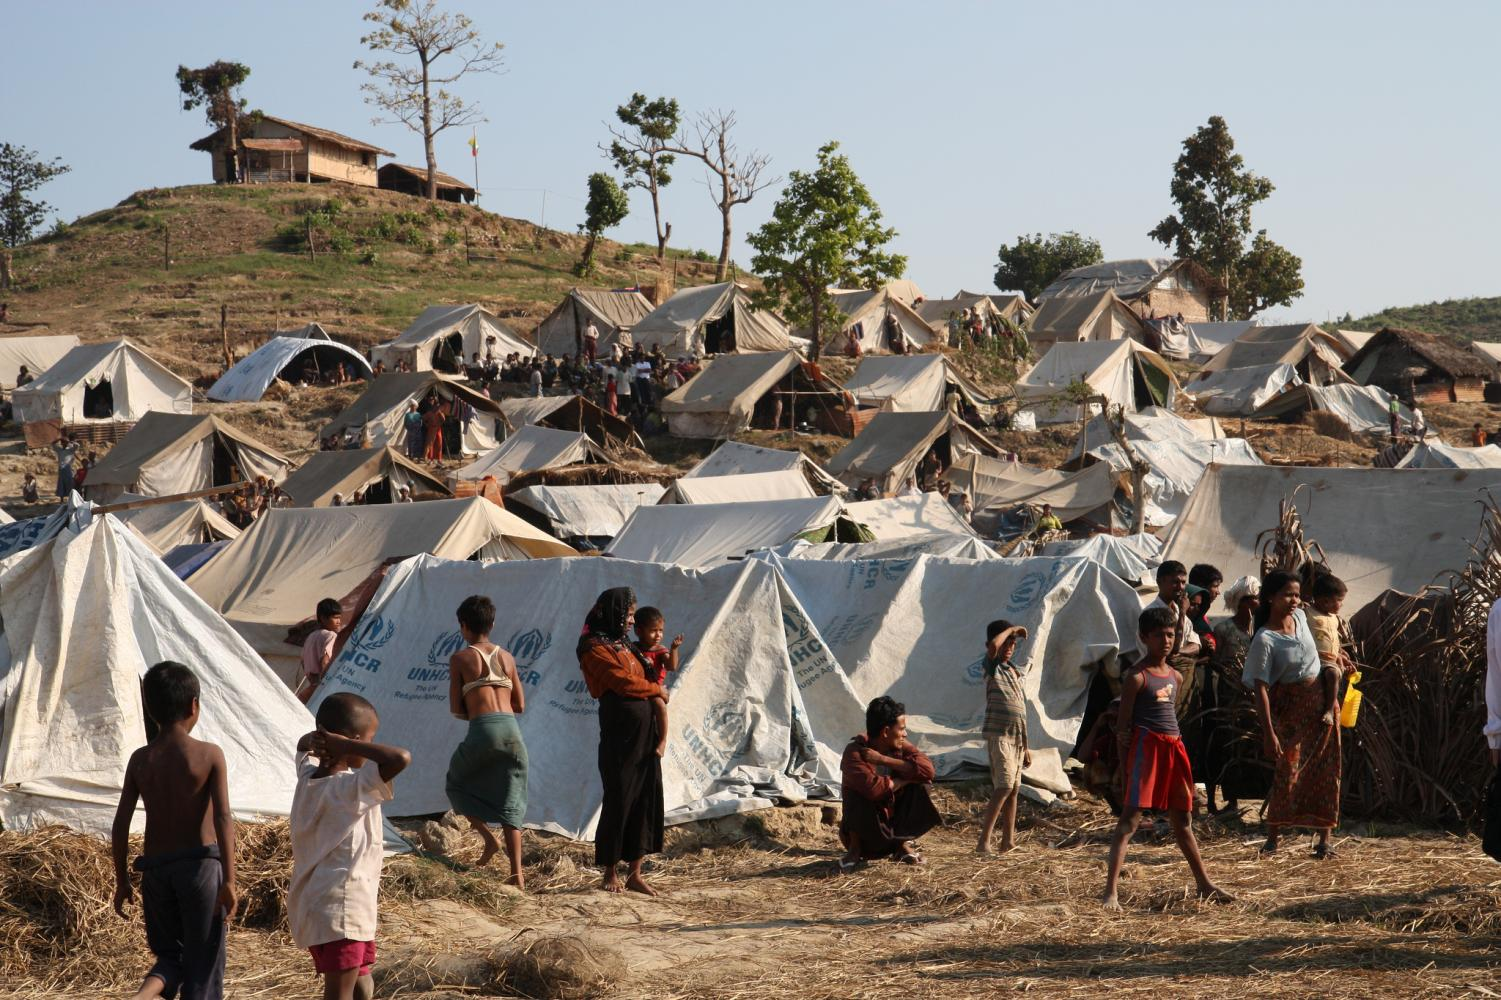 Refugees and displaced Rohingyans living in camps under some of the worst conditions.